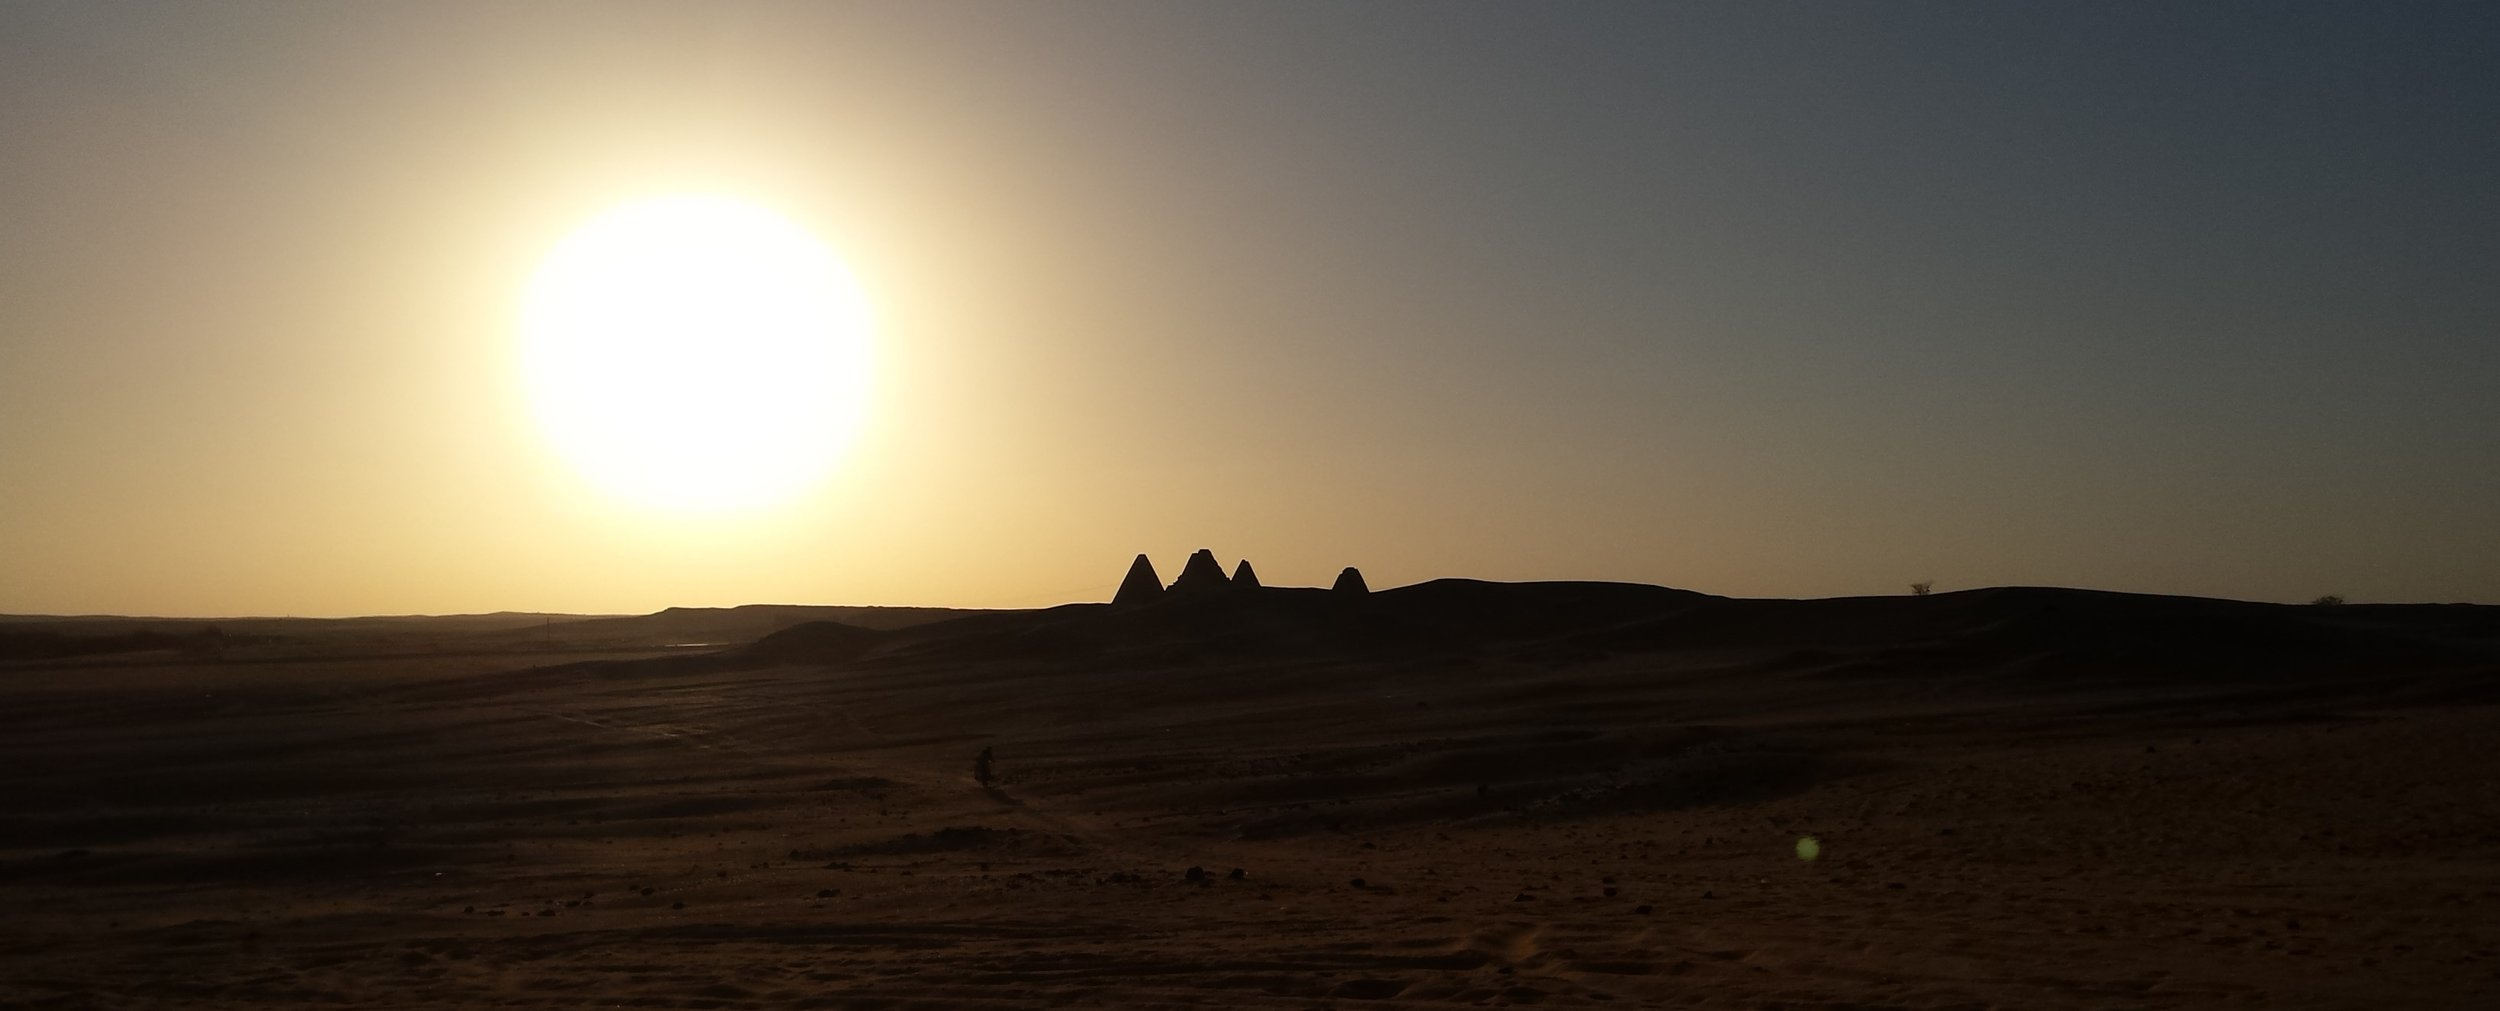 Pyramids near to Jebel Barkal, Karima.